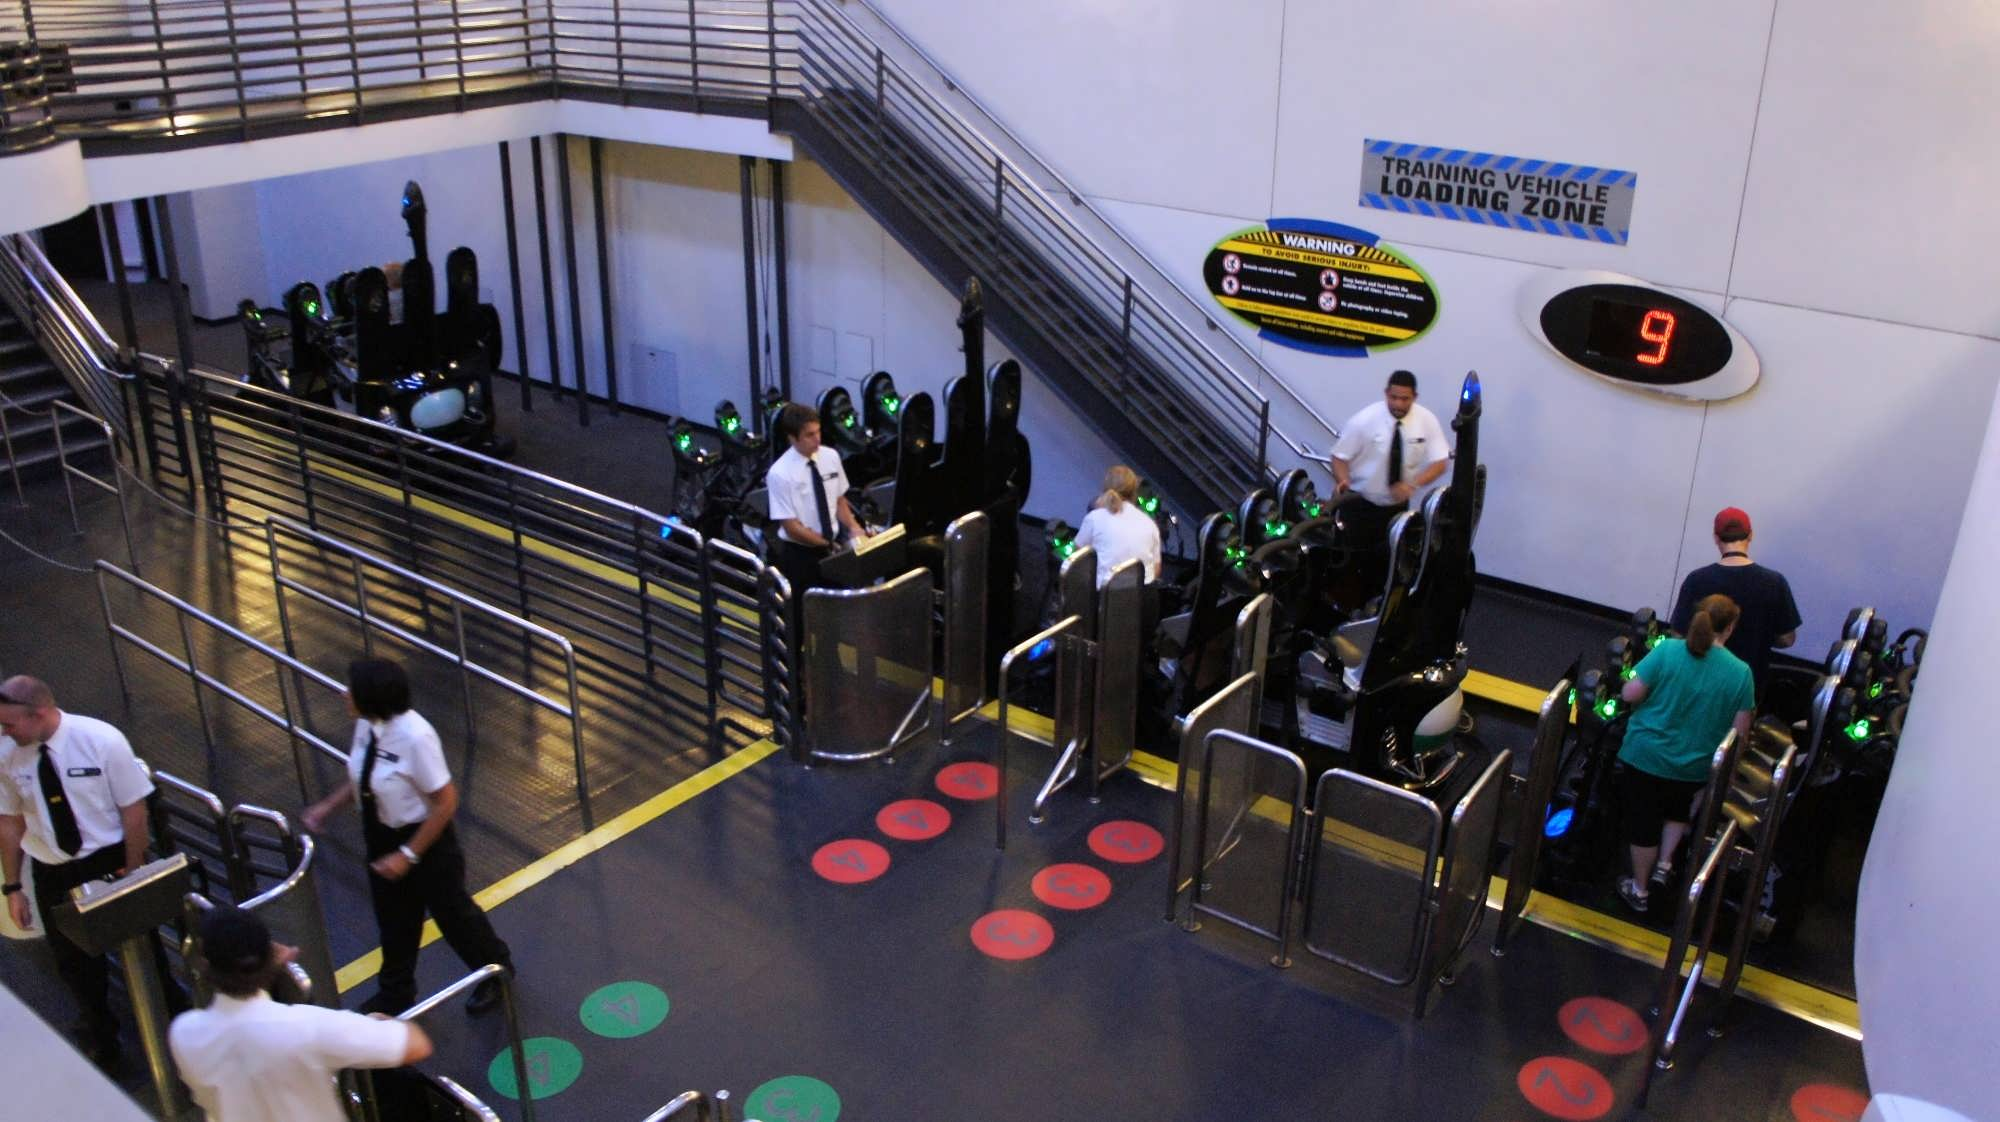 Ride loading area showing the red side and green side at MEN IN BLACK Alien Attack at Universal Studios Florida